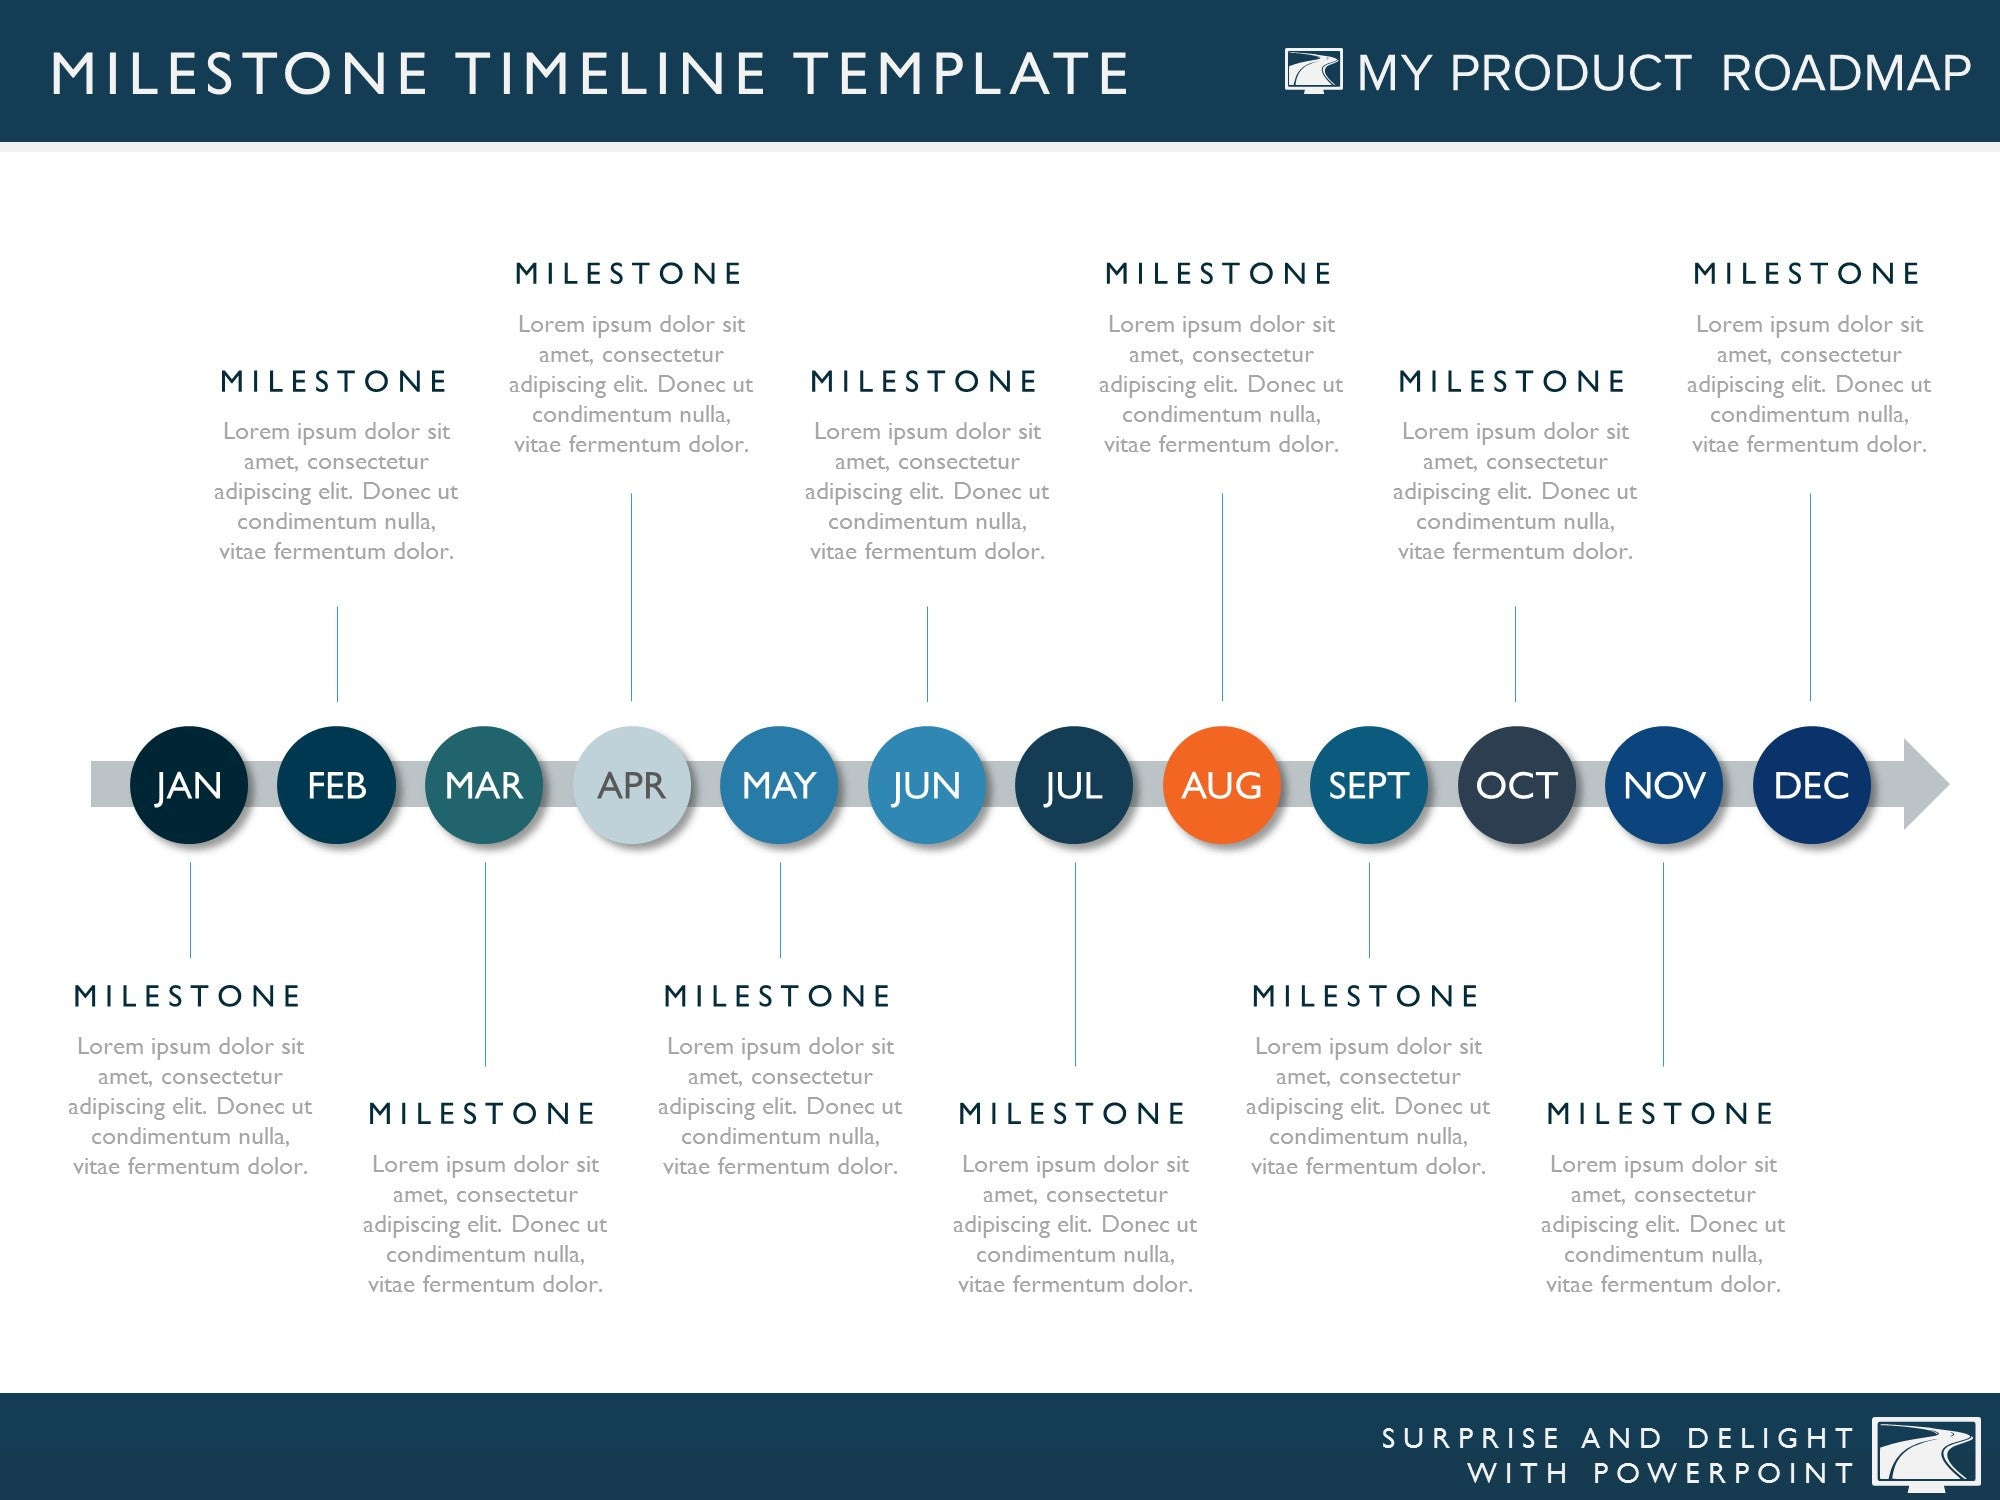 Twelve phase product development timeline roadmap presentation product strategy development cycle plan portfolio management software agile planning how to create a roadmap example toneelgroepblik Choice Image